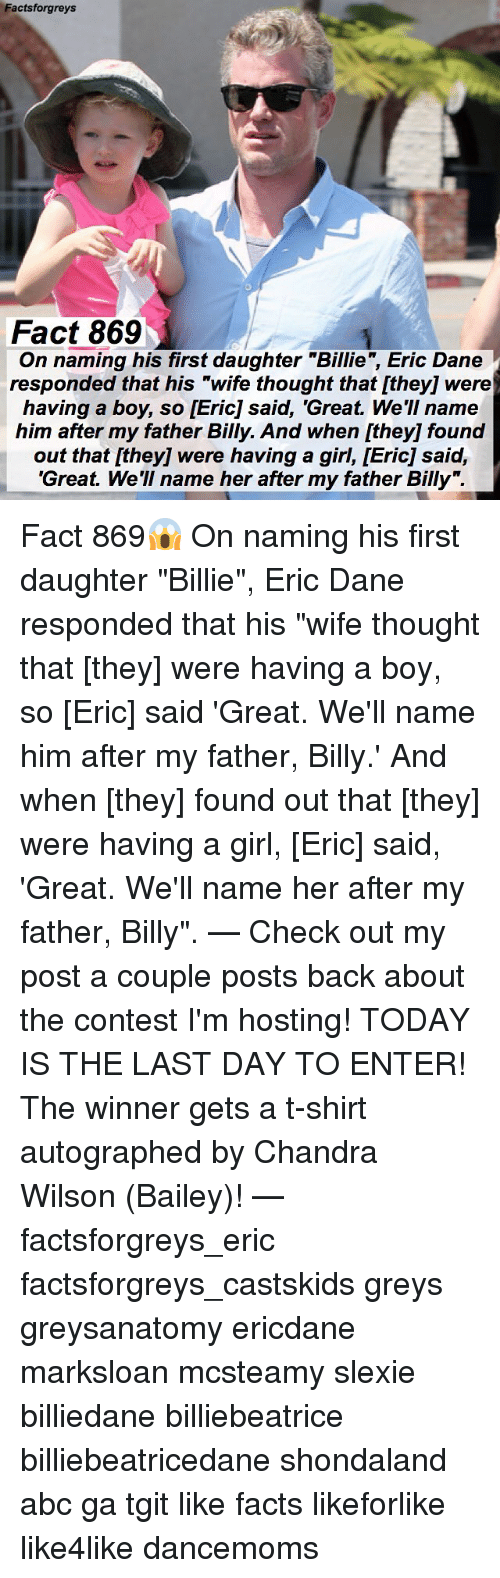 "Conteste: Factsforgreys  Fact 869  g his first daughter ""Billie, Eric Dane  On naming his first daughter ""Billie"", Eric Dane  responded that his ""wife thought that [they] were  having a boy, so [Eric] said, 'Great. We'II name  him after my father Billy. And when [they] found  out that [they] were having a girl, [Eric] said,  'Great. We'll name her after my father Billy"". Fact 869😱 On naming his first daughter ""Billie"", Eric Dane responded that his ""wife thought that [they] were having a boy, so [Eric] said 'Great. We'll name him after my father, Billy.' And when [they] found out that [they] were having a girl, [Eric] said, 'Great. We'll name her after my father, Billy"". — Check out my post a couple posts back about the contest I'm hosting! TODAY IS THE LAST DAY TO ENTER! The winner gets a t-shirt autographed by Chandra Wilson (Bailey)! — factsforgreys_eric factsforgreys_castskids greys greysanatomy ericdane marksloan mcsteamy slexie billiedane billiebeatrice billiebeatricedane shondaland abc ga tgit like facts likeforlike like4like dancemoms"